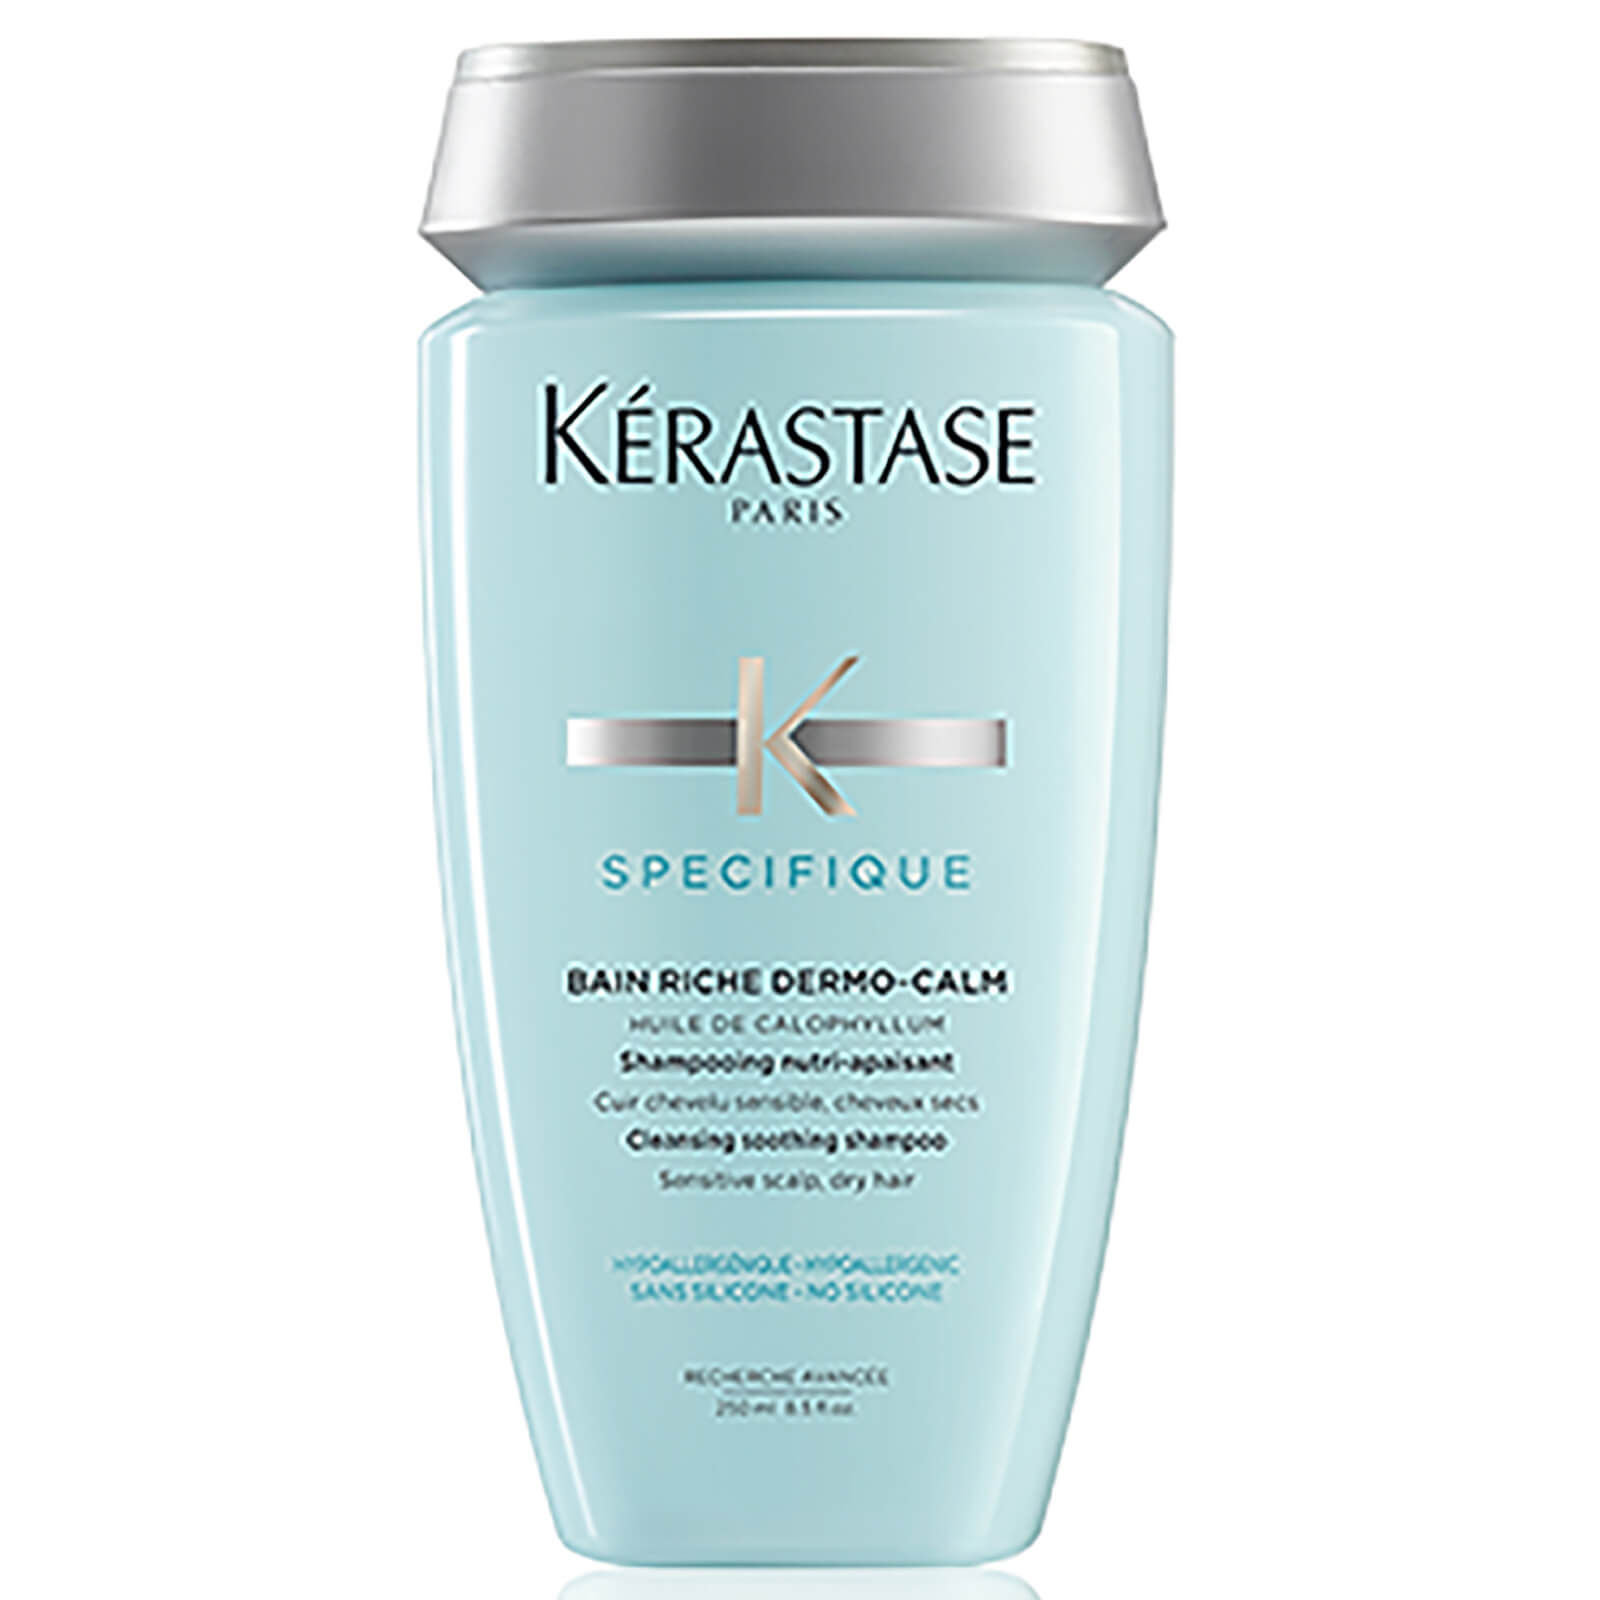 Kérastase Specifique Dermo-Calm Bain Riche Shampoo 250ml | Free ...